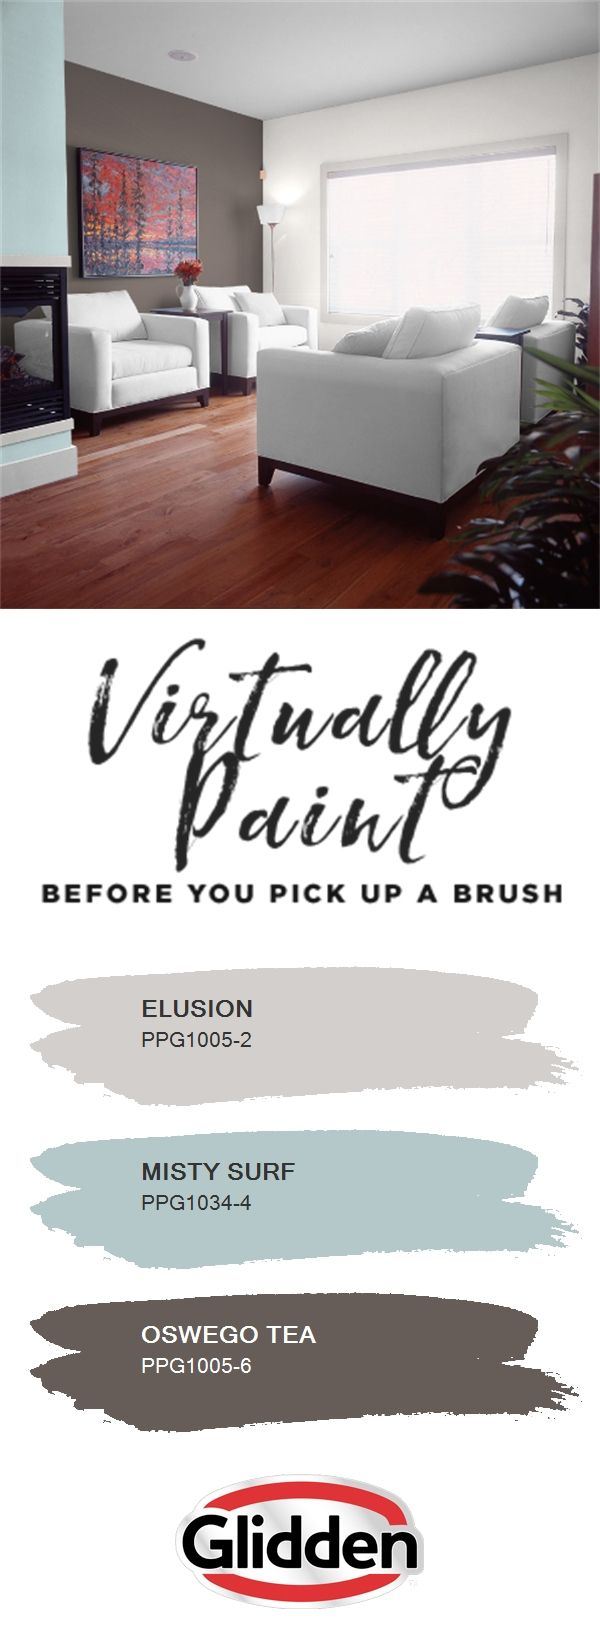 Digitally Paint Your Own Room With Your Favorite Colors In Just A Few Clicks Upload Your Picture To Find Paint Color Visualizer Home Decor Decals Home Decor